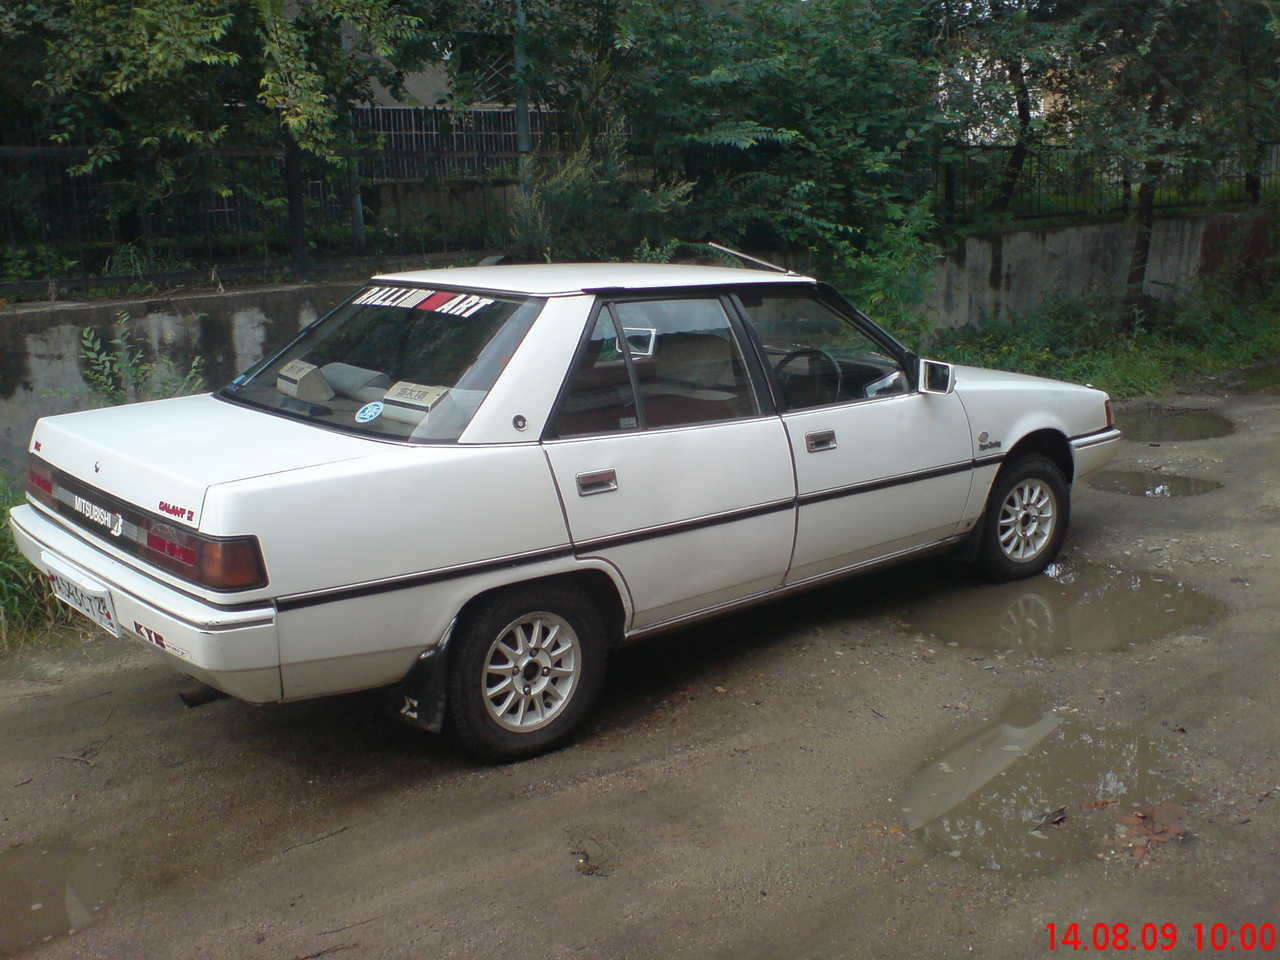 1986 Mitsubishi Galant Photos, 1.8, Gasoline, FF, Manual For Sale